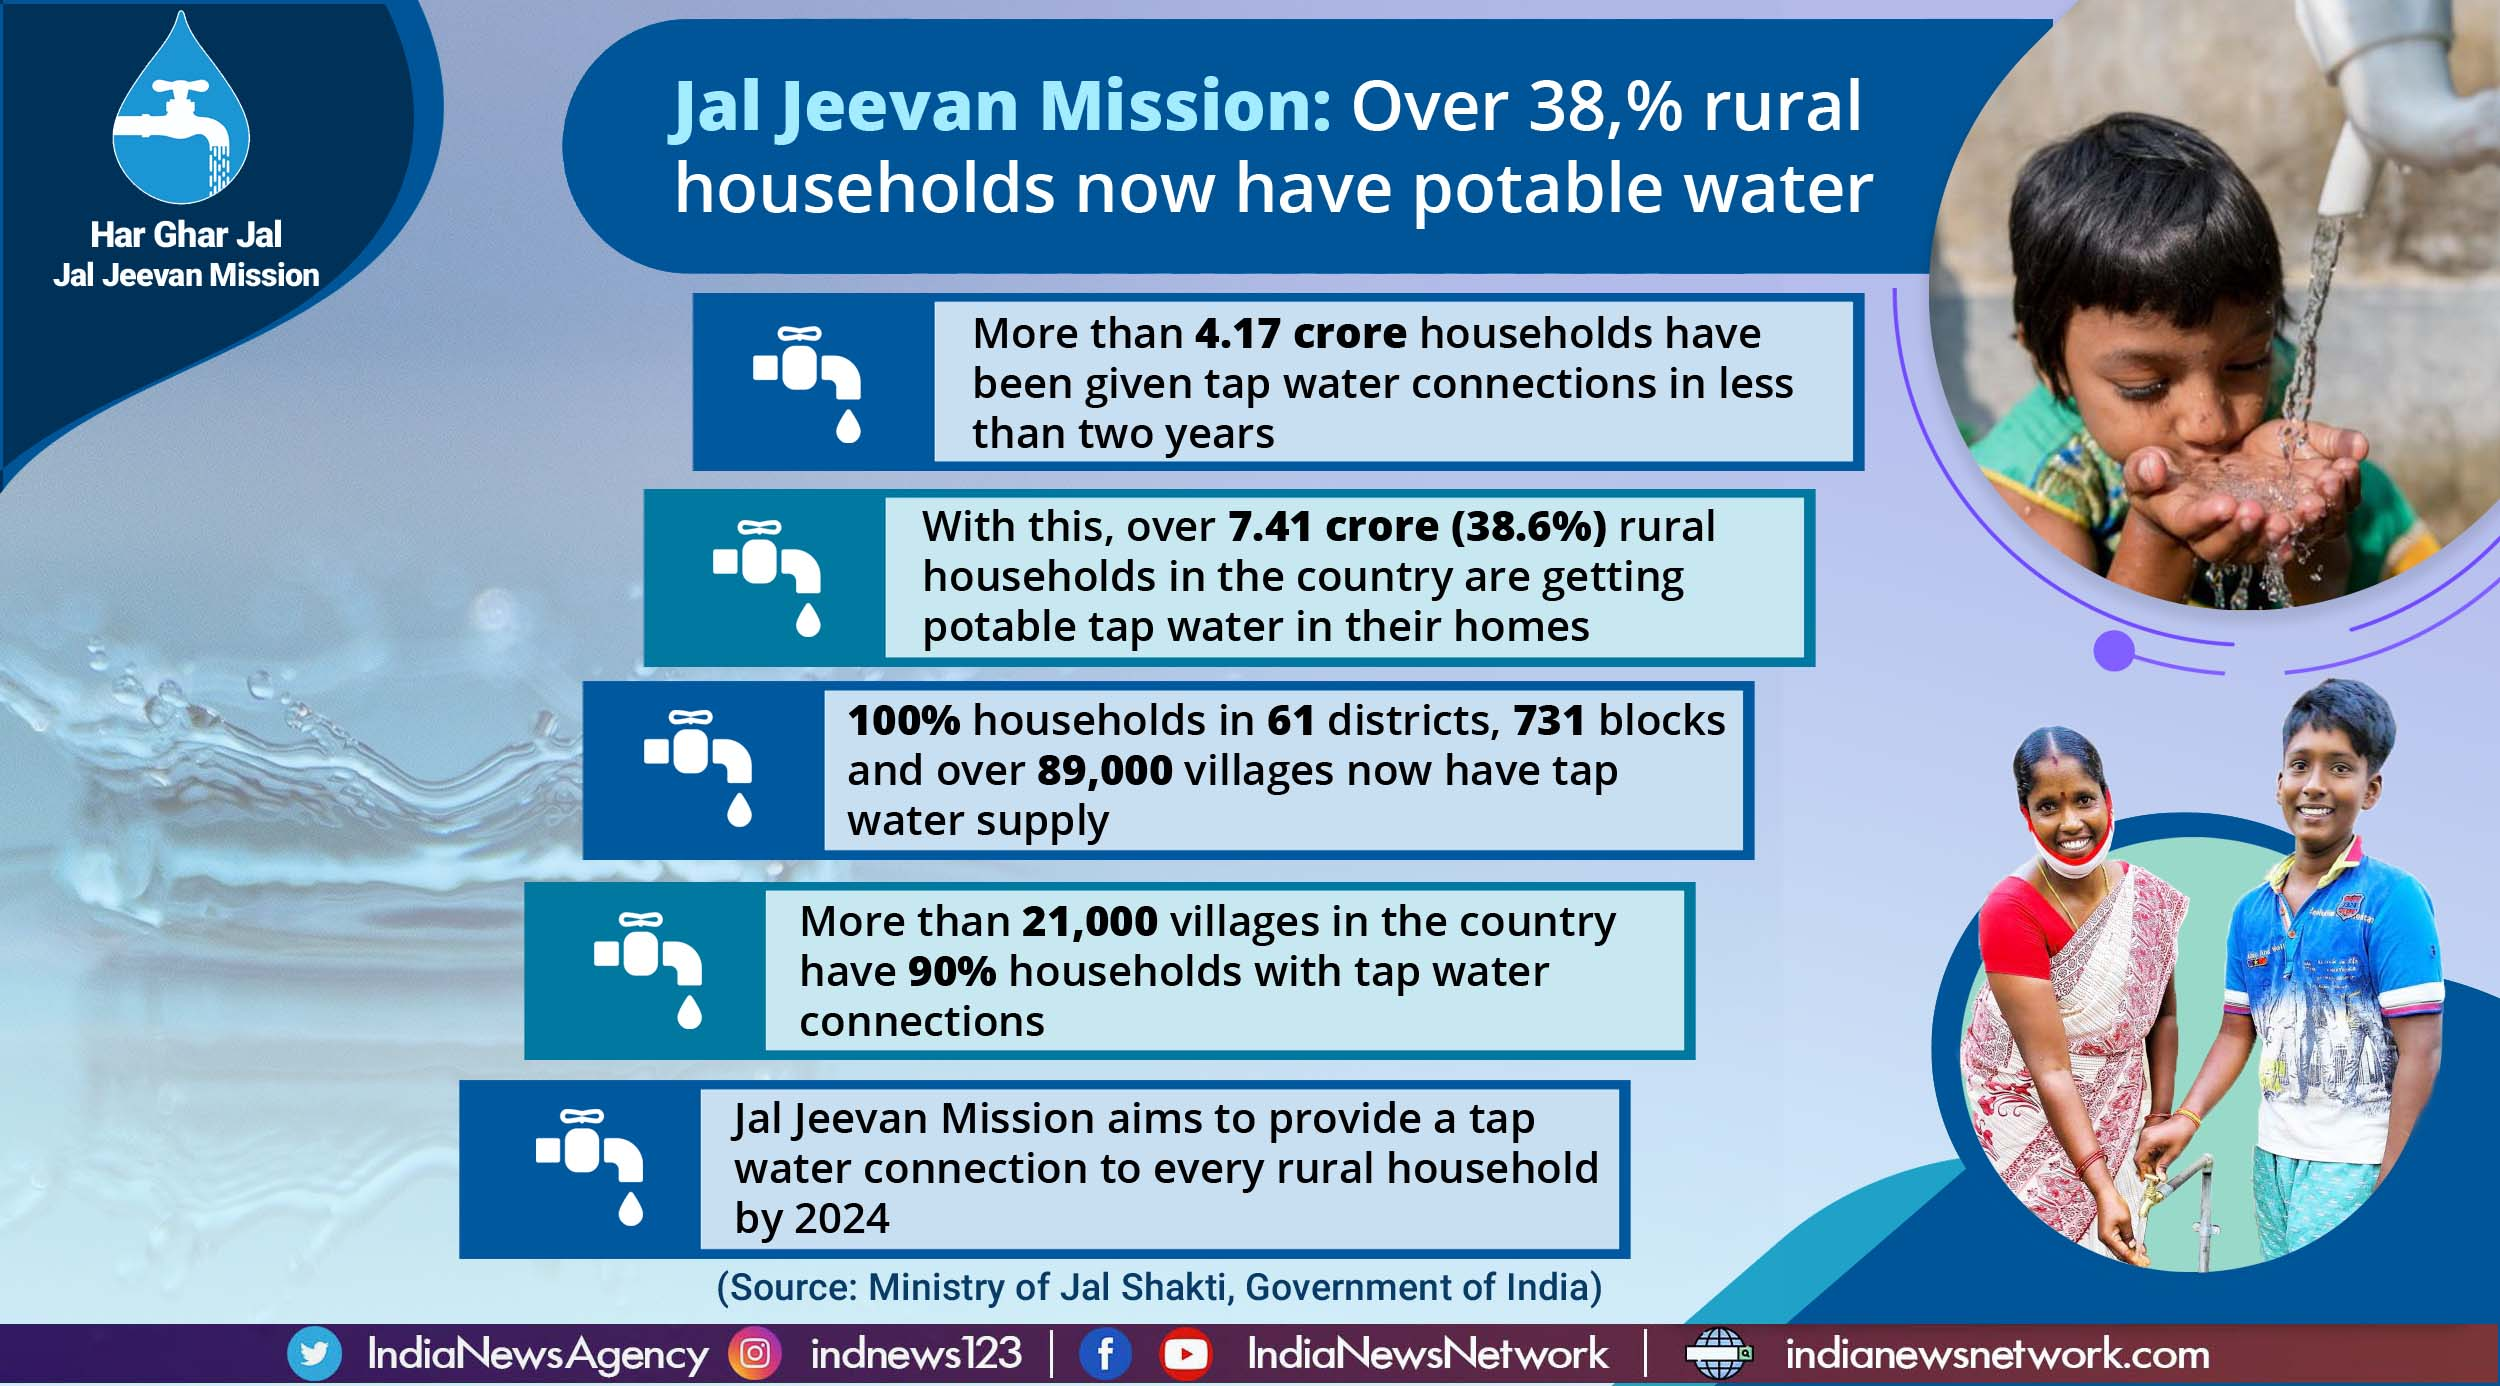 Jal Jeevan Mission: Over 38,% rural households now have potable water